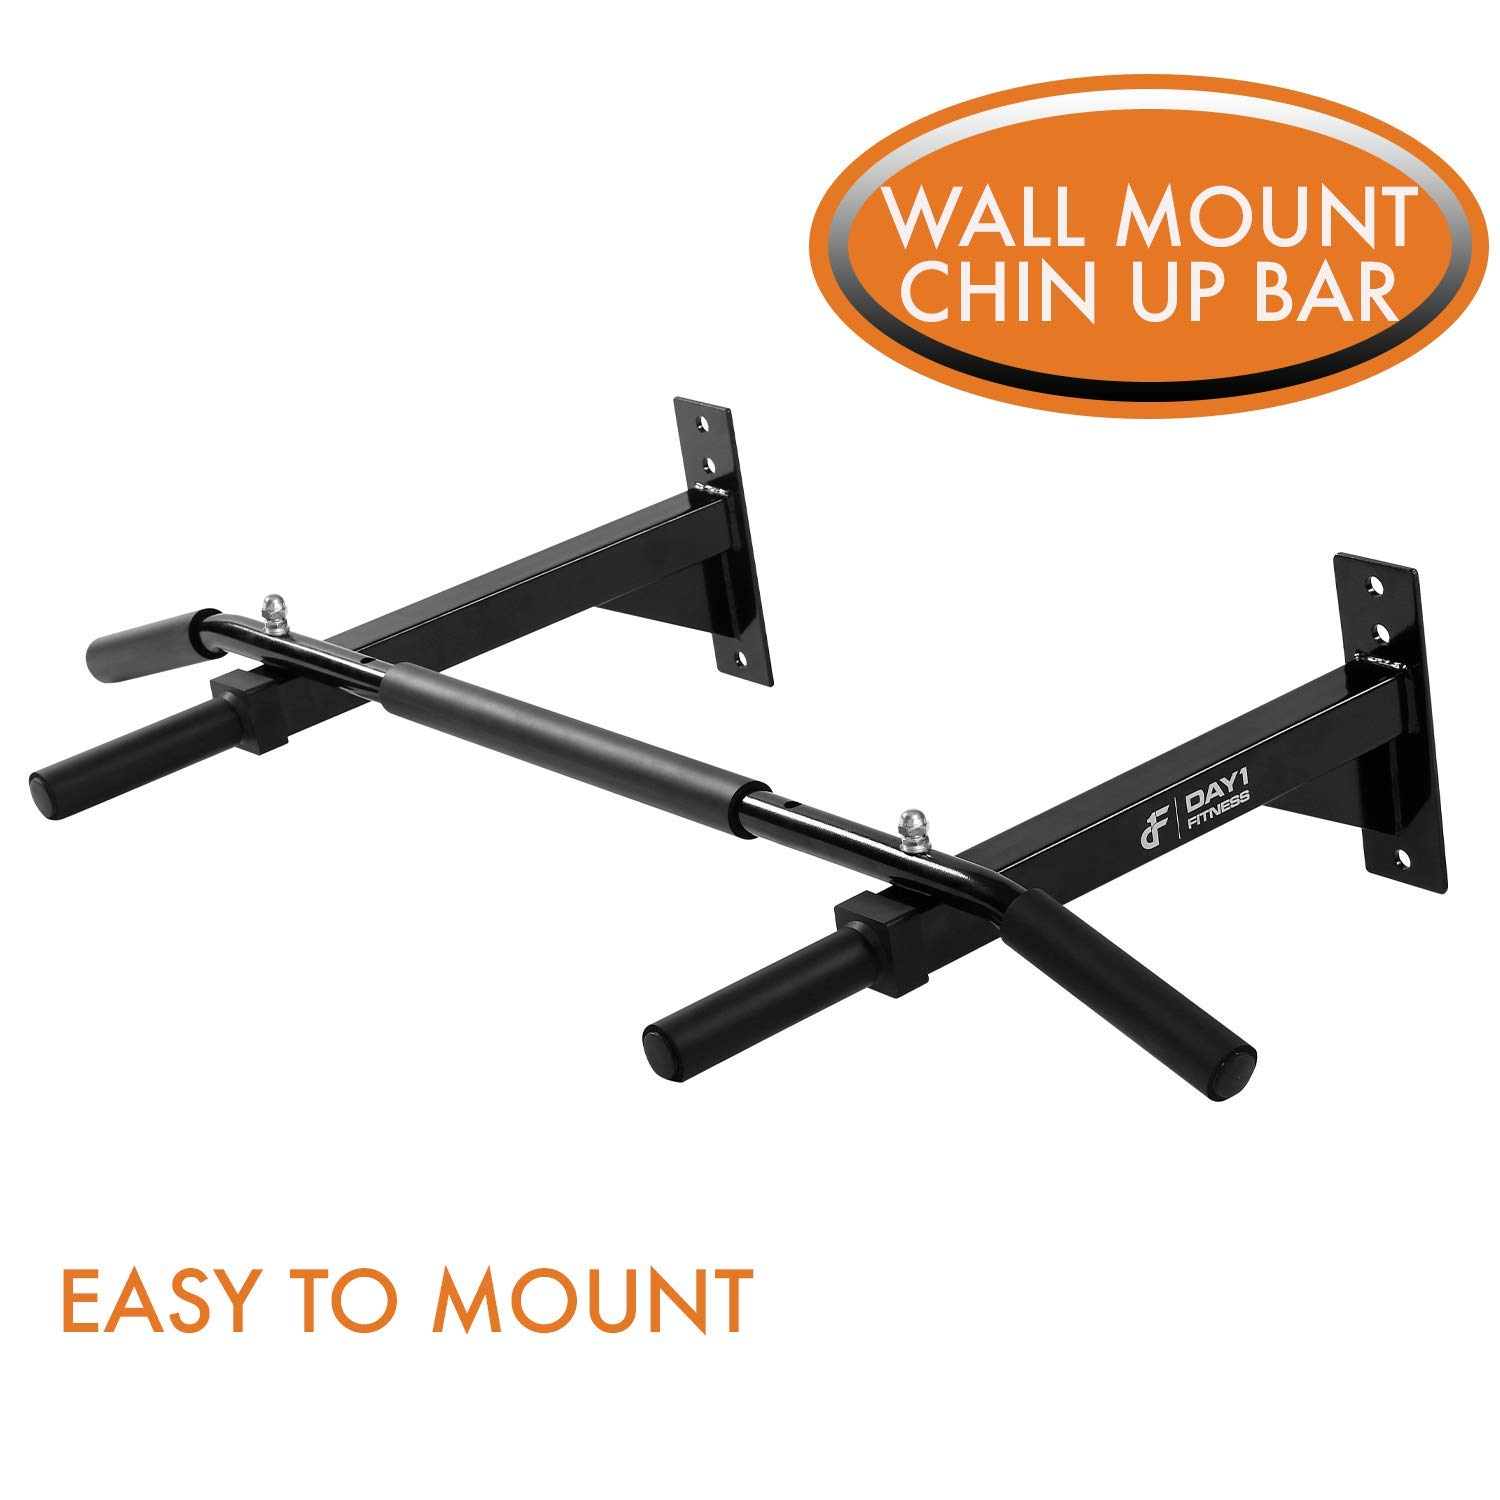 Wall Mounted Chin-Up Bar by Day 1 Fitness with Padded Foam Grips, Holds up to 400 lbs -Heavy-Duty,Steel Pull-Up Bar for Home, Includes all Mounting Hardware-Workout Pull-Up Equipment for Leg Raises